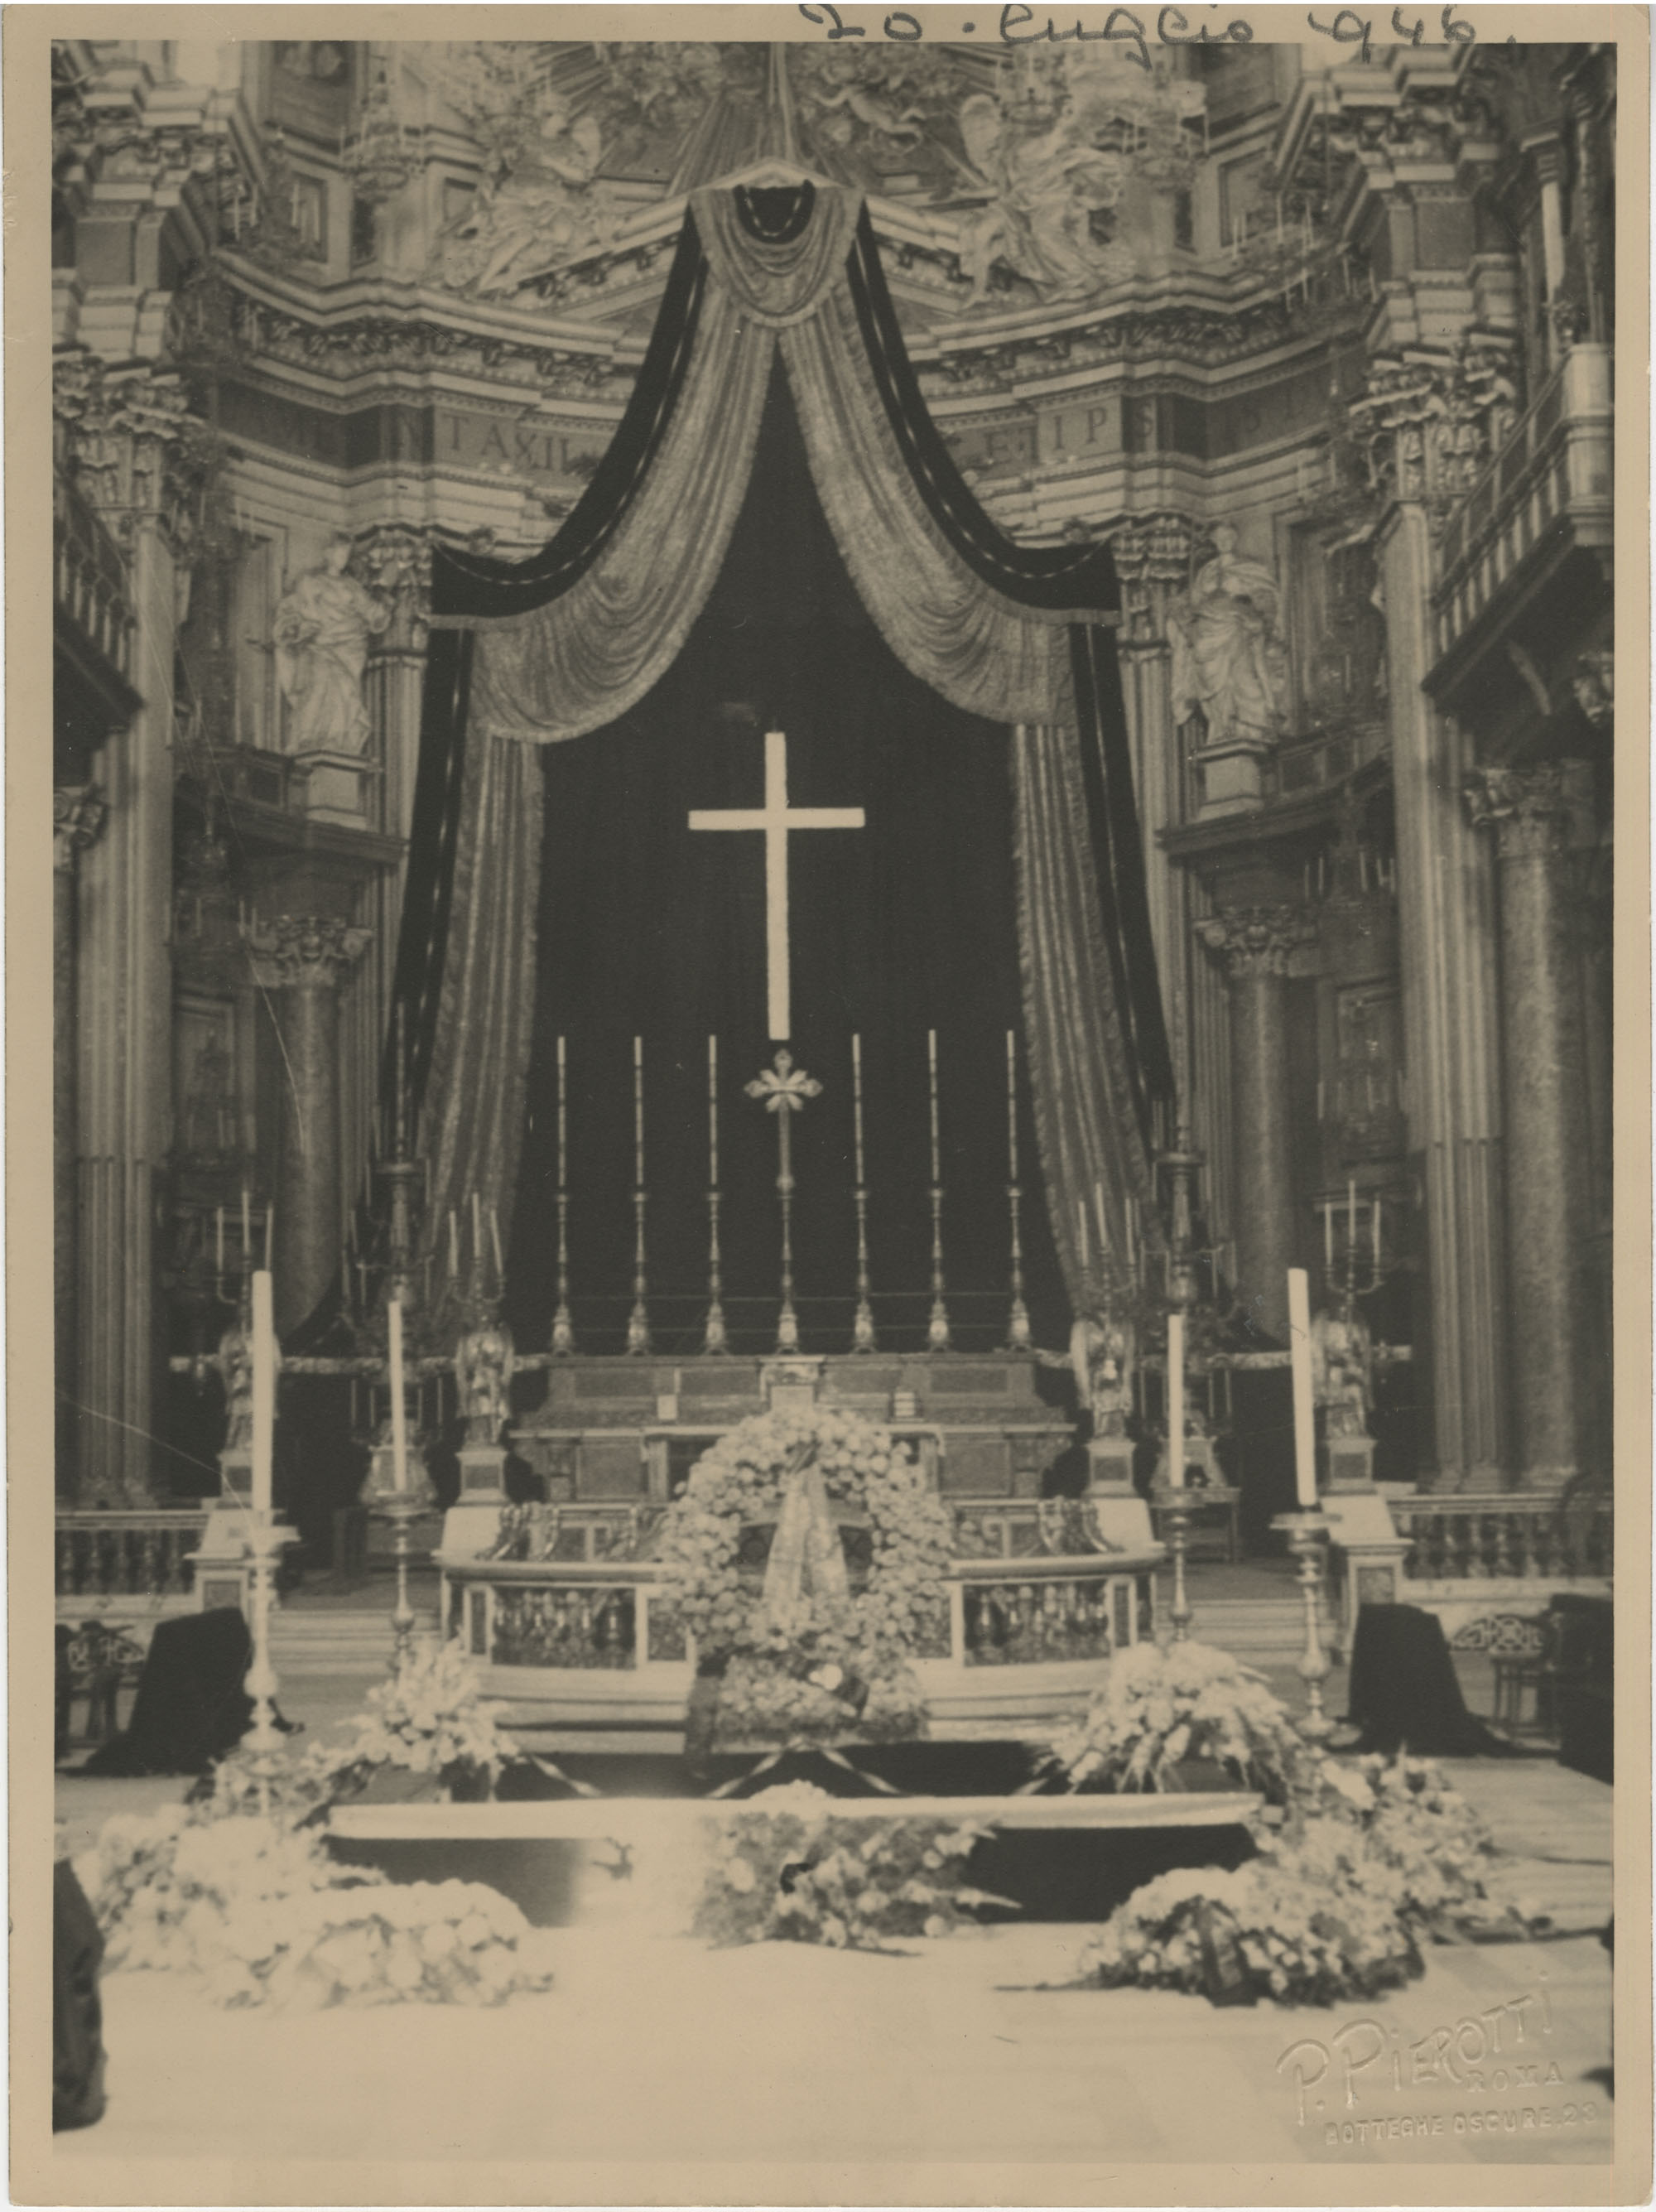 Interior of a cathedral decorated for Mario Pansa's funeral, Photograph 1